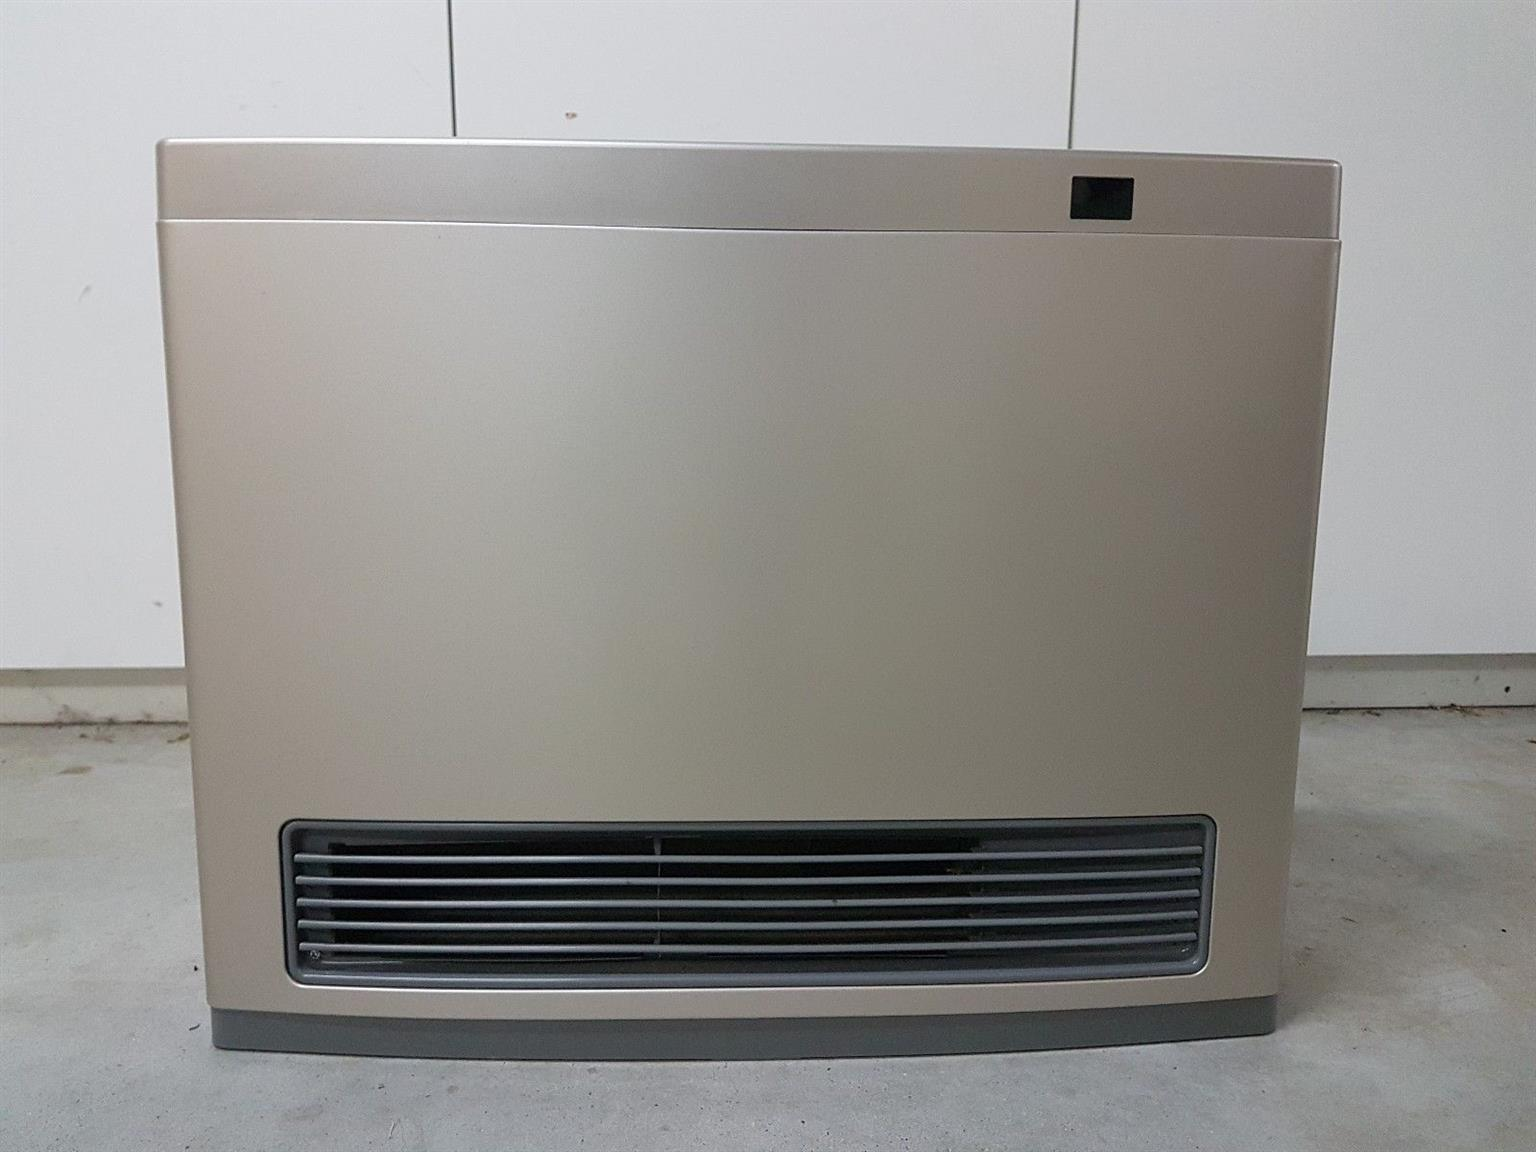 Very good quality gas heater for sale with warranty